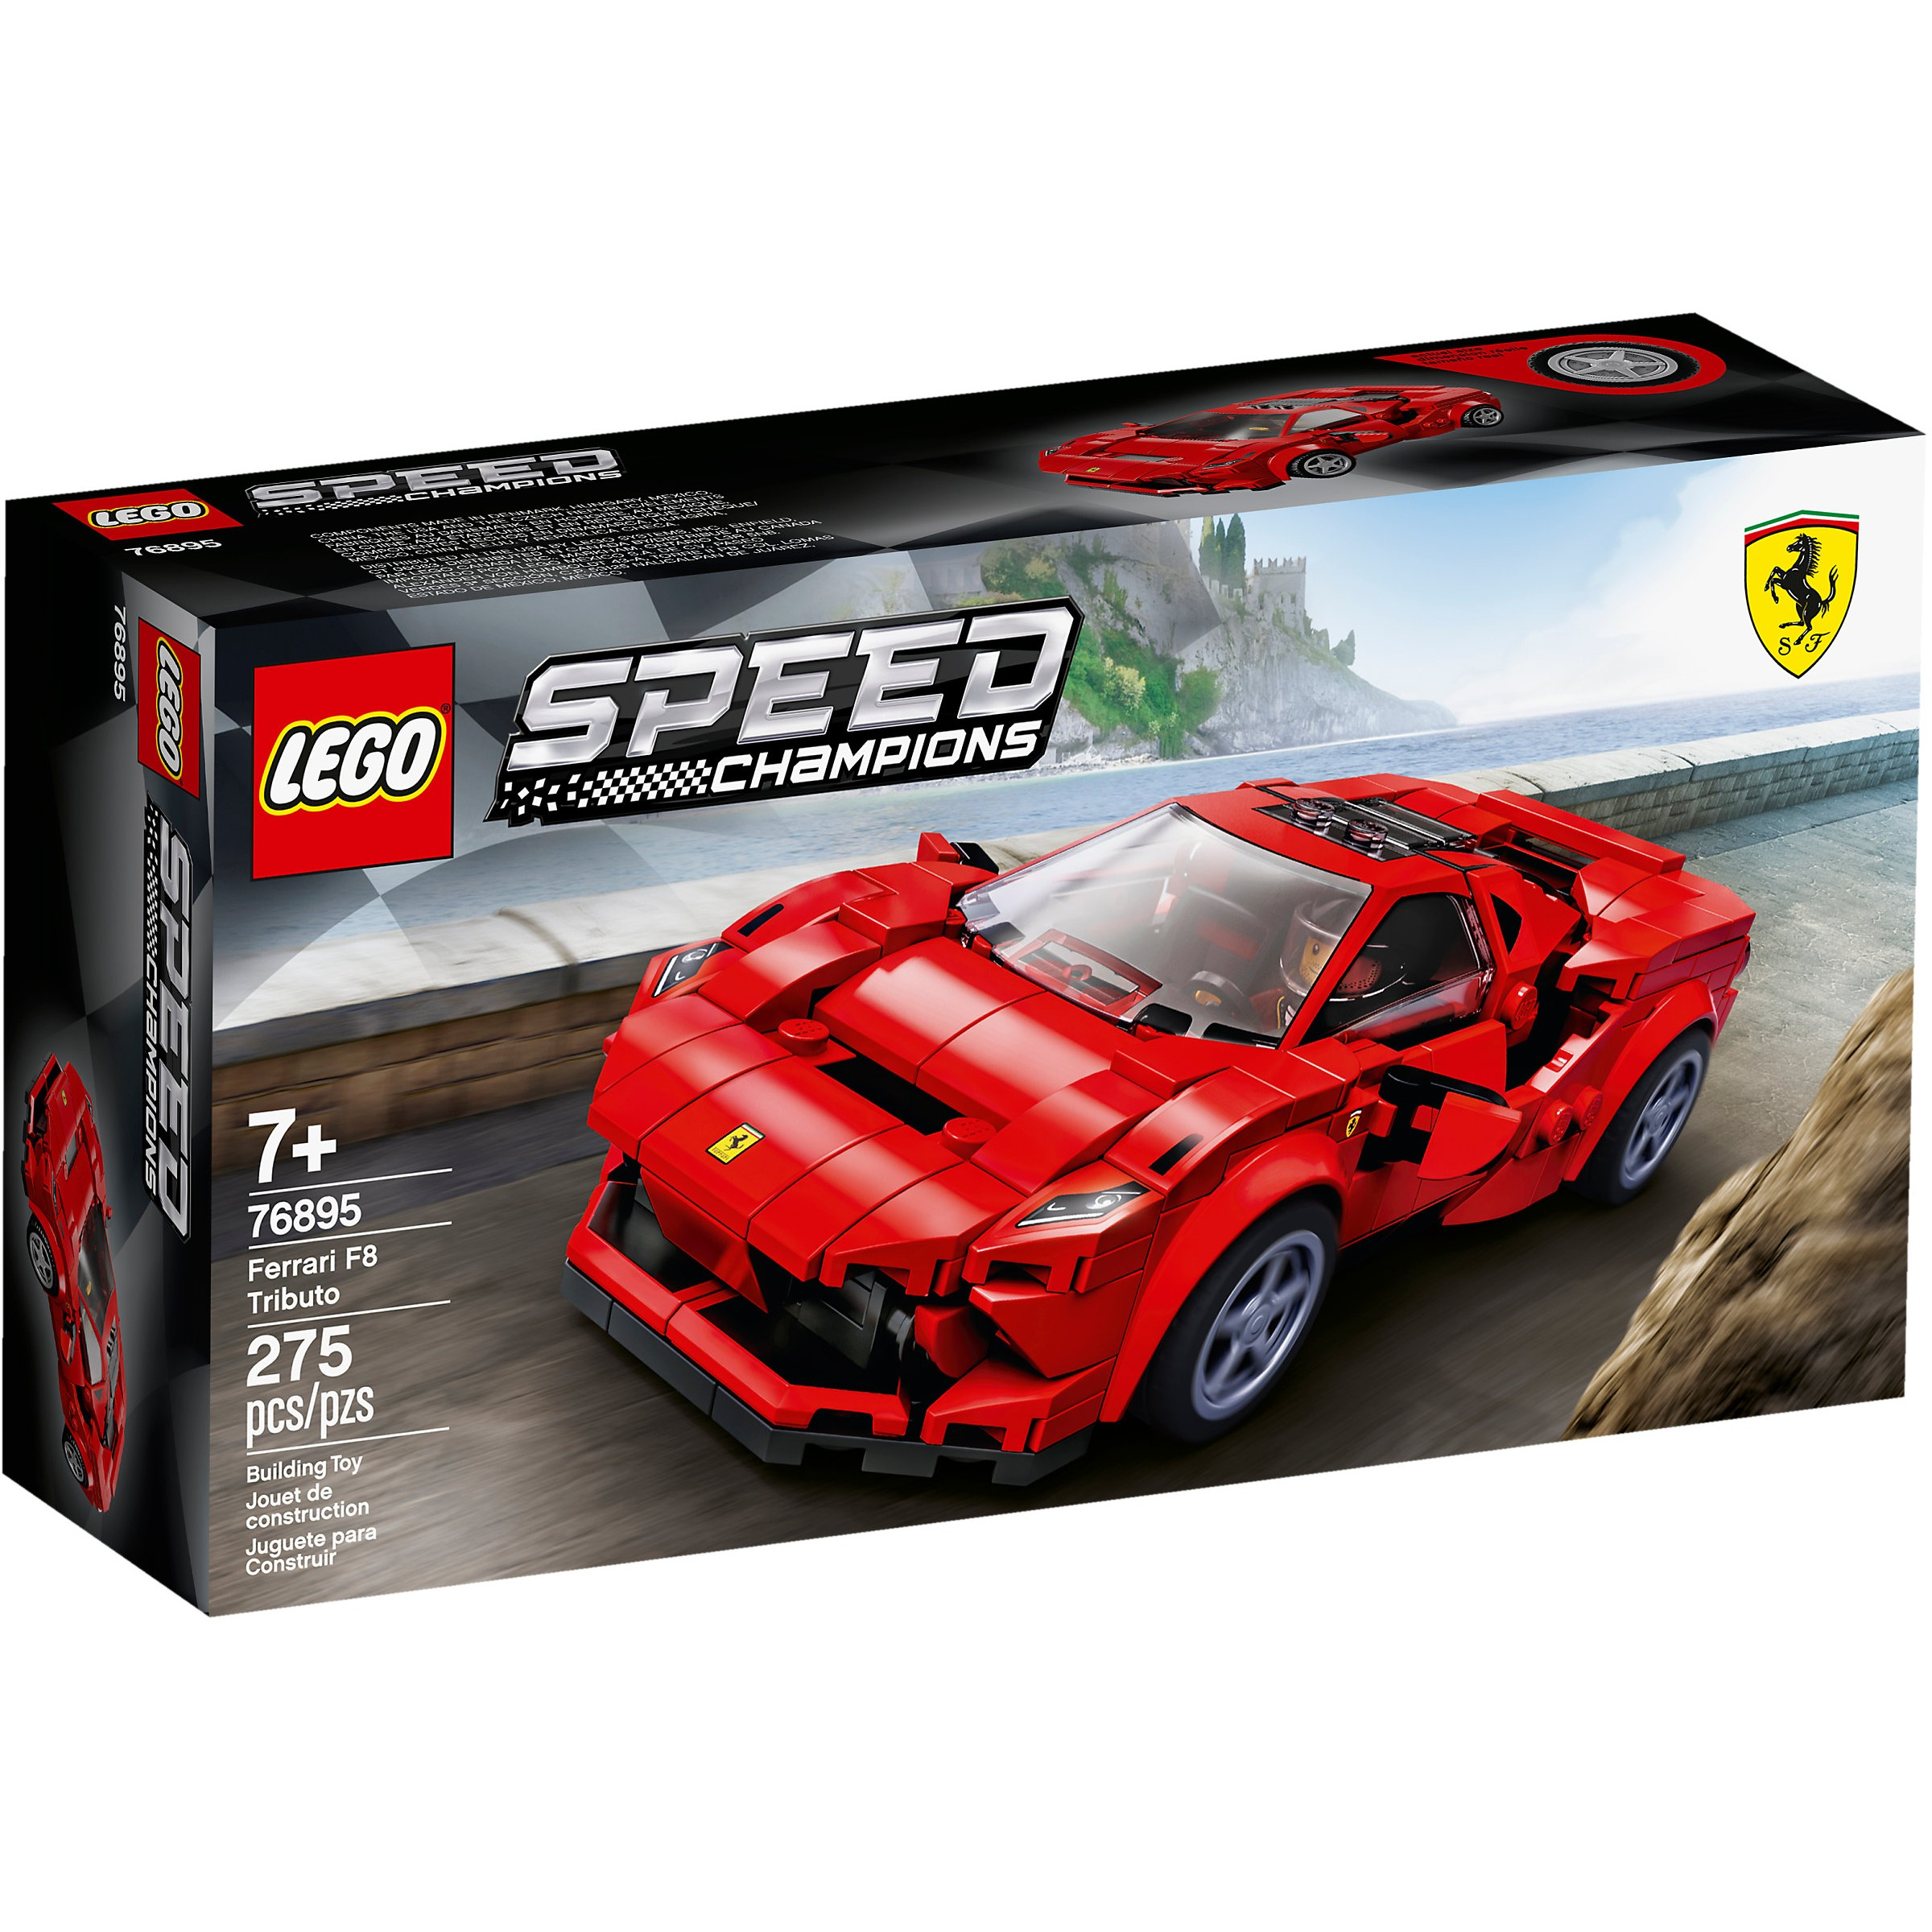 Ferrari F8 Tributo Engine: LEGO 76895 Speed Champions Ferrari F8 Tributo At Toys R Us